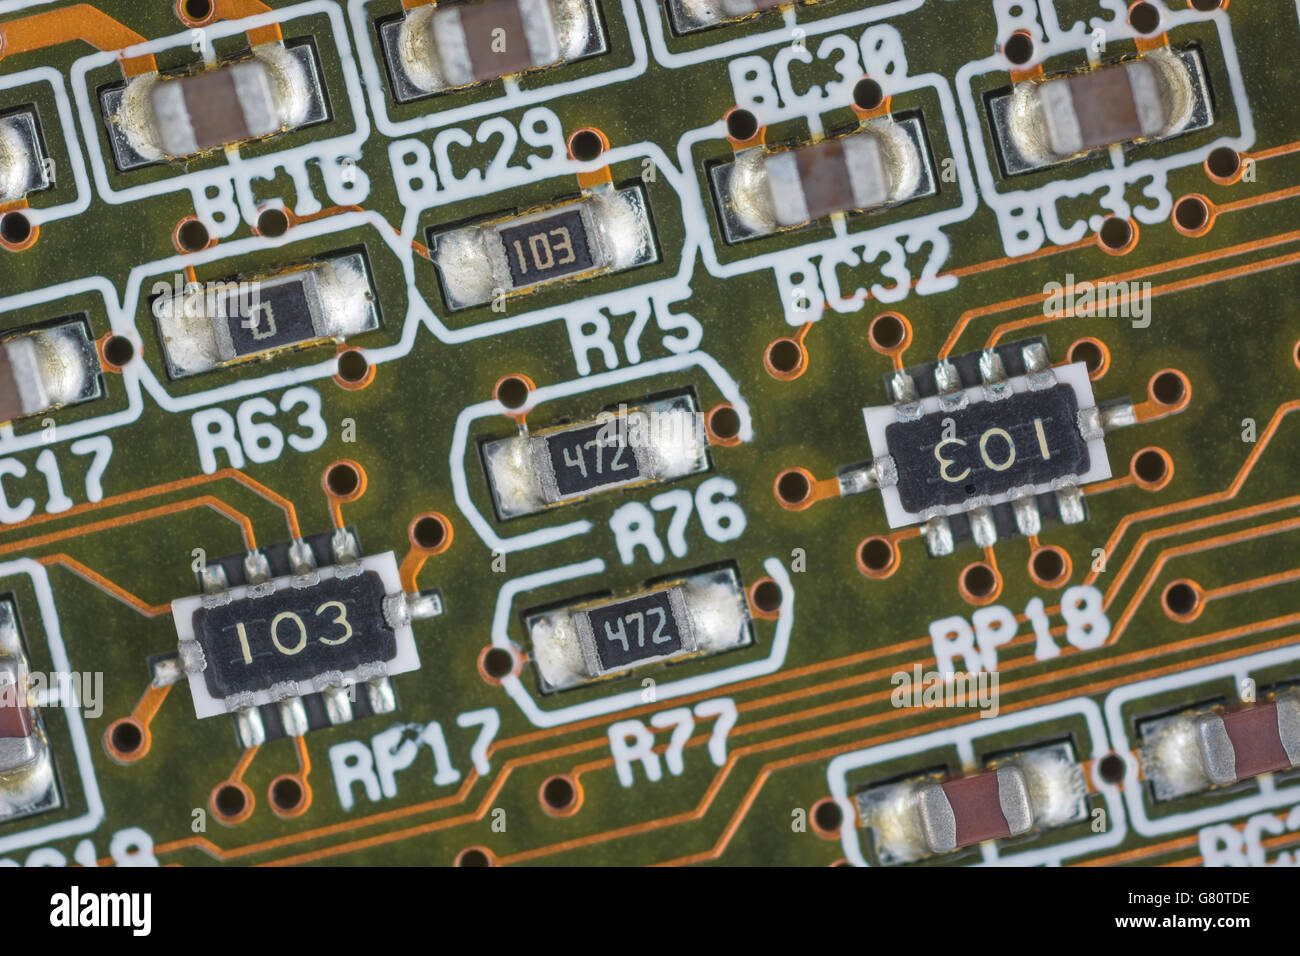 Concept - computer technology / cpu / system architecture. Socket 7 components below CPU chip. Wiring inside computer. - Stock Image